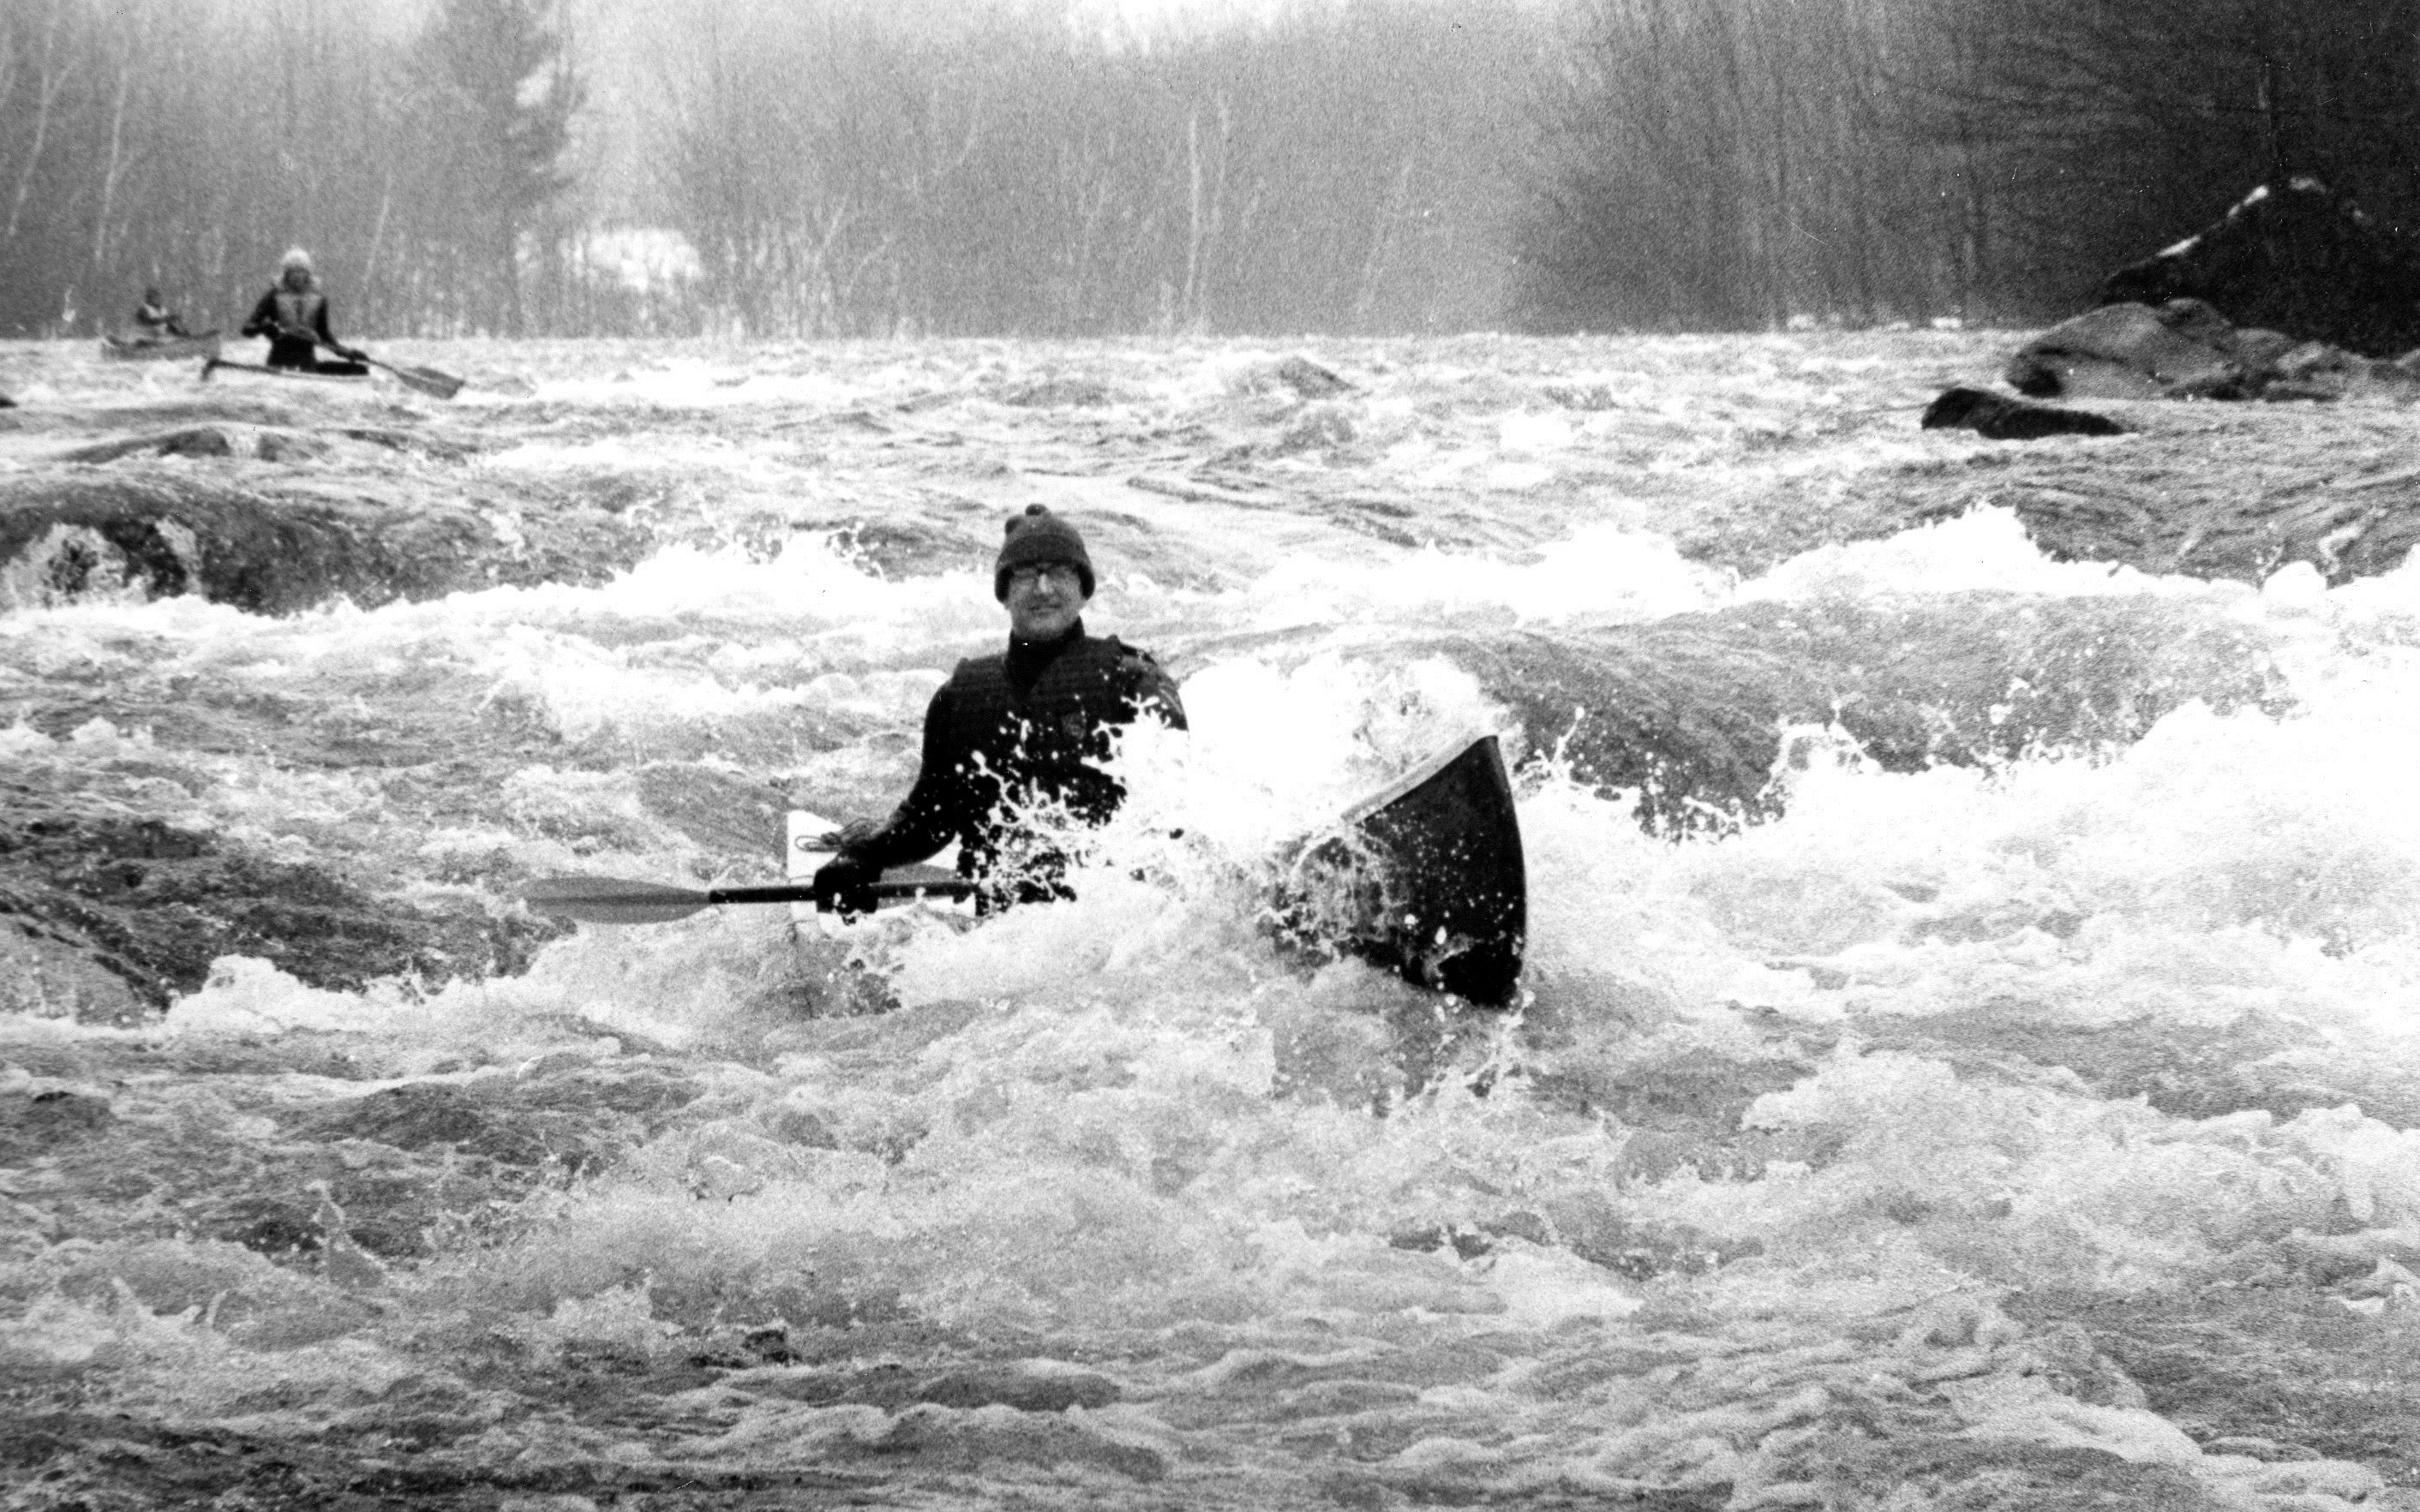 Al Pindar paddling Deerfield River at Zoar Gap_March-13-1978_photo by Debbie Arnold